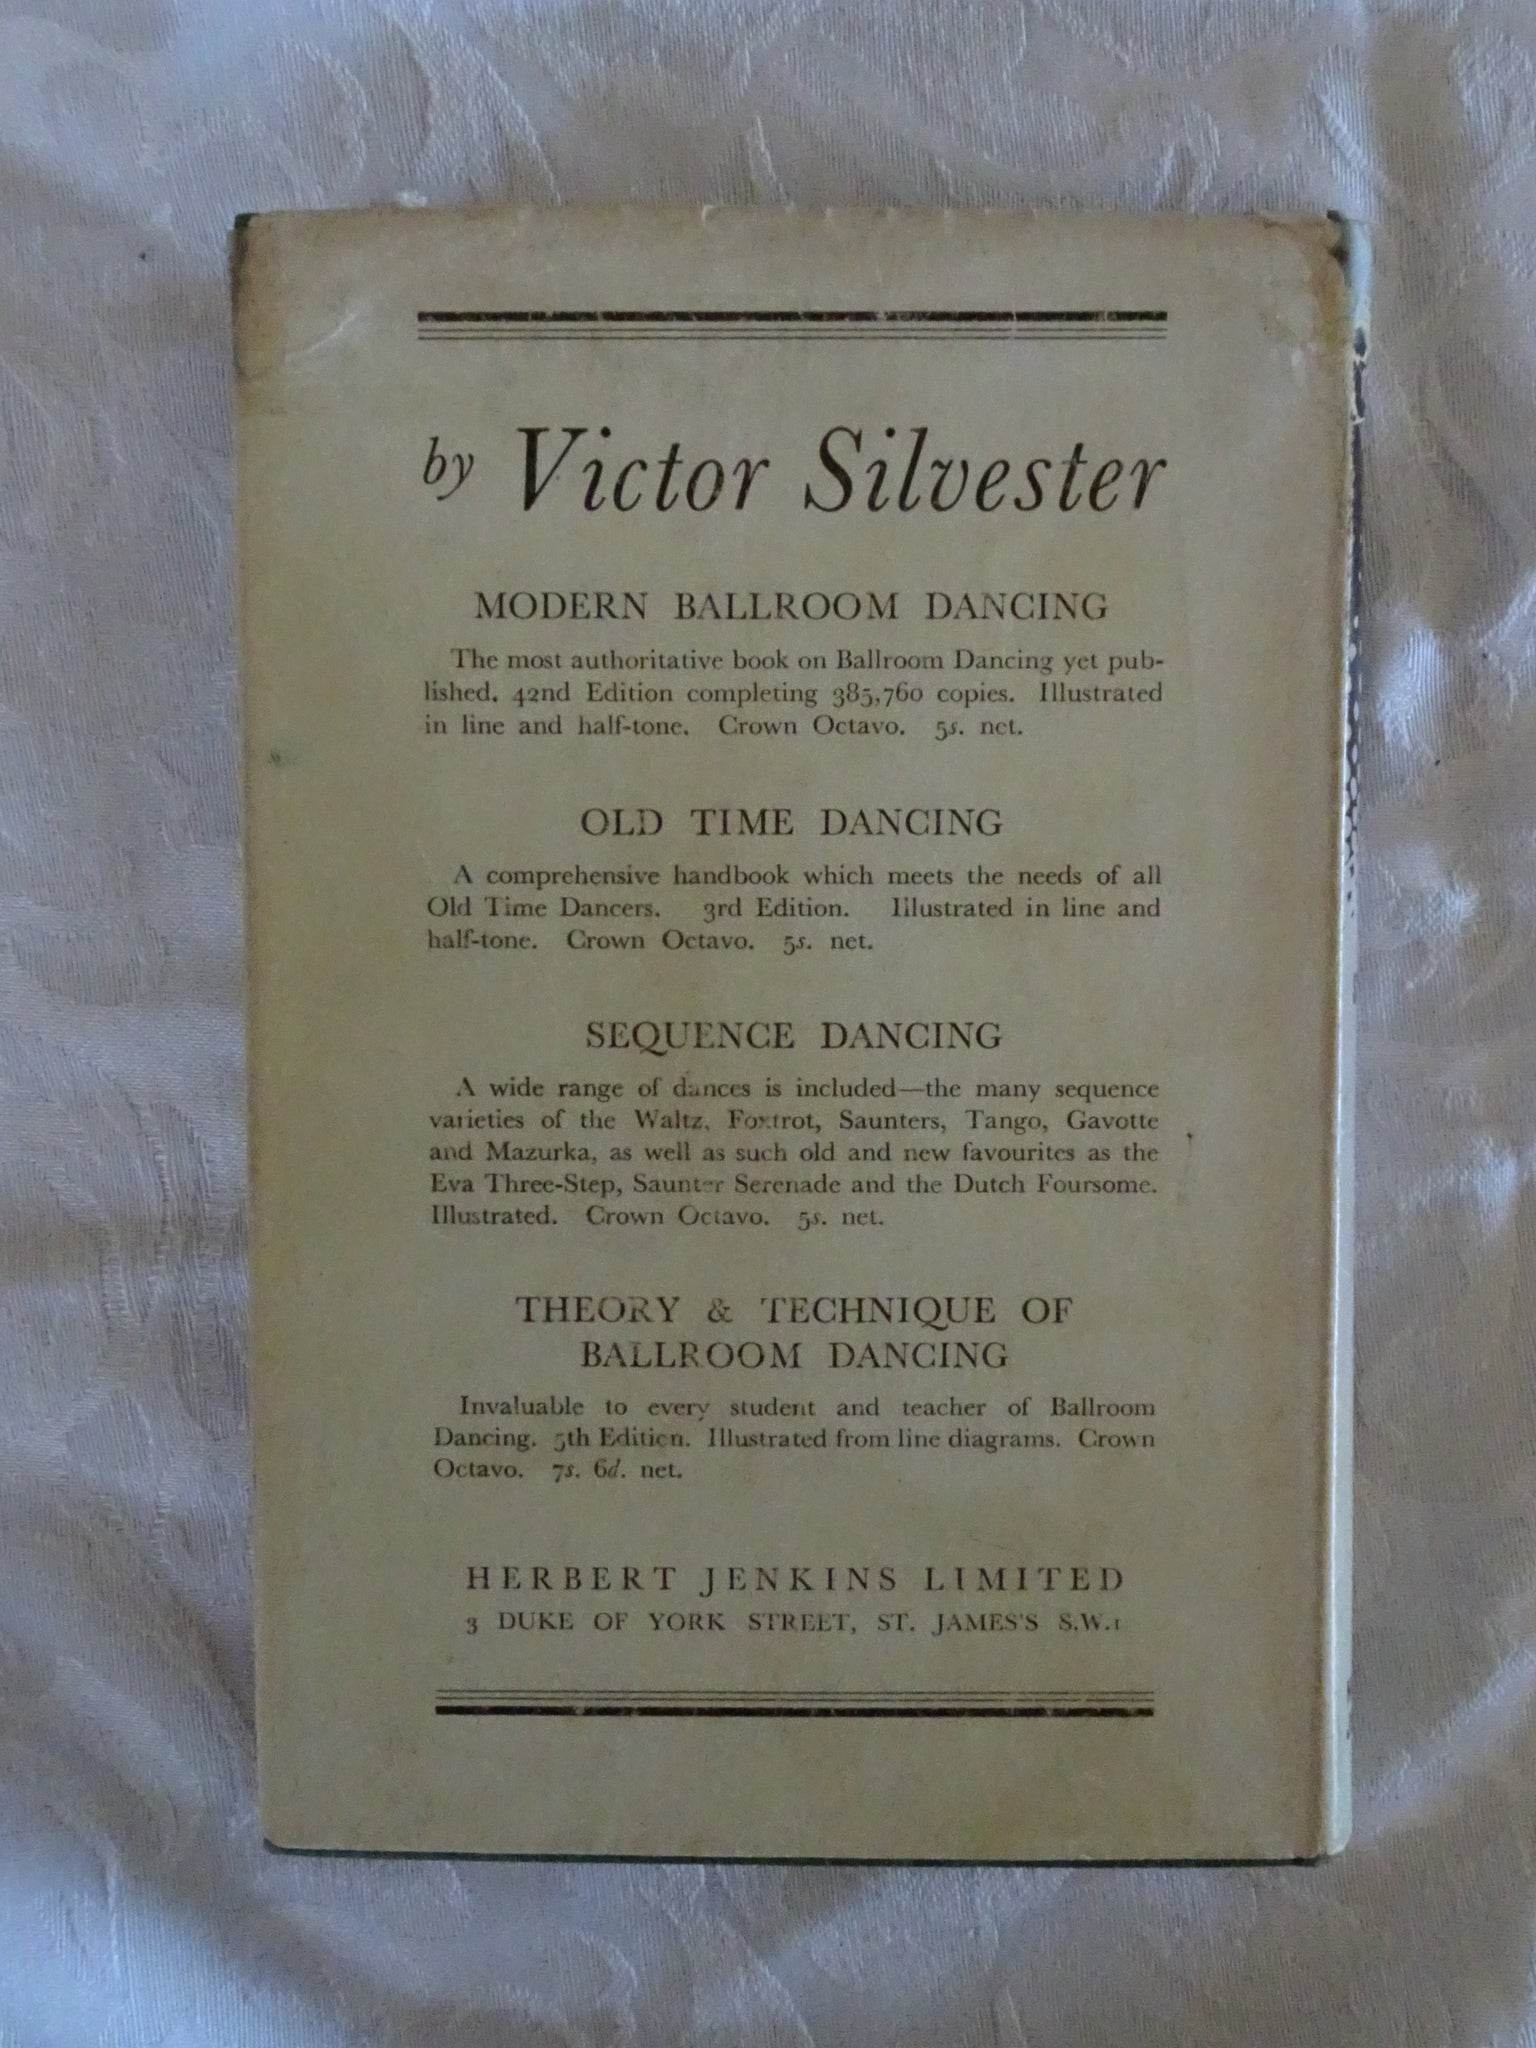 More Old Time Dances By Victor Silvester Morgans Rare Books Foxtrot Steps Diagram Waltz Dance